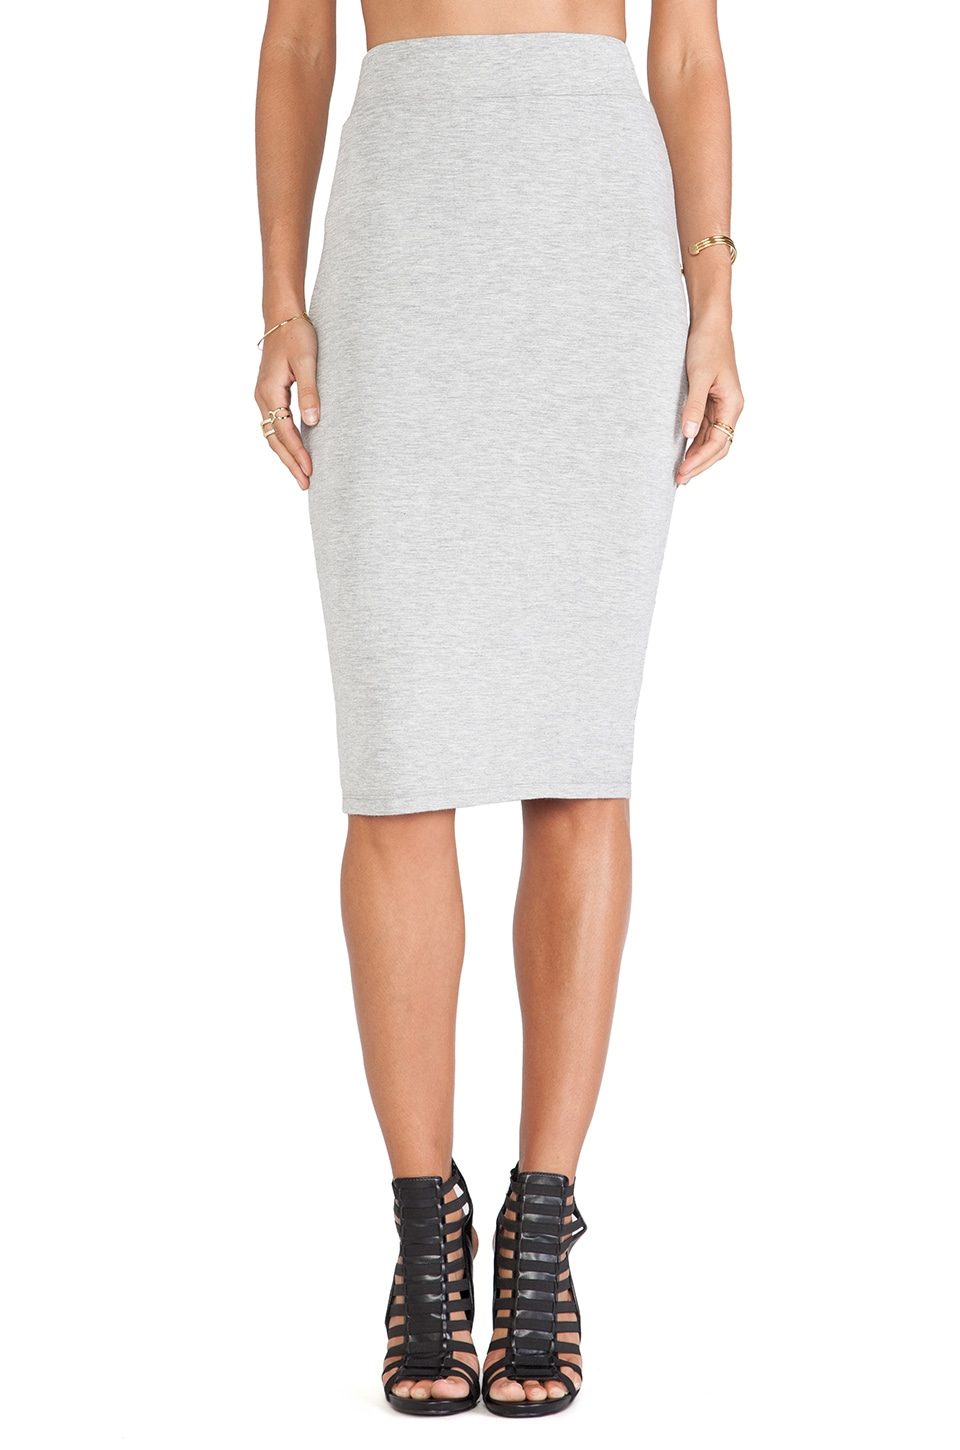 BLQ BASIQ High Waisted Skirt in Grey